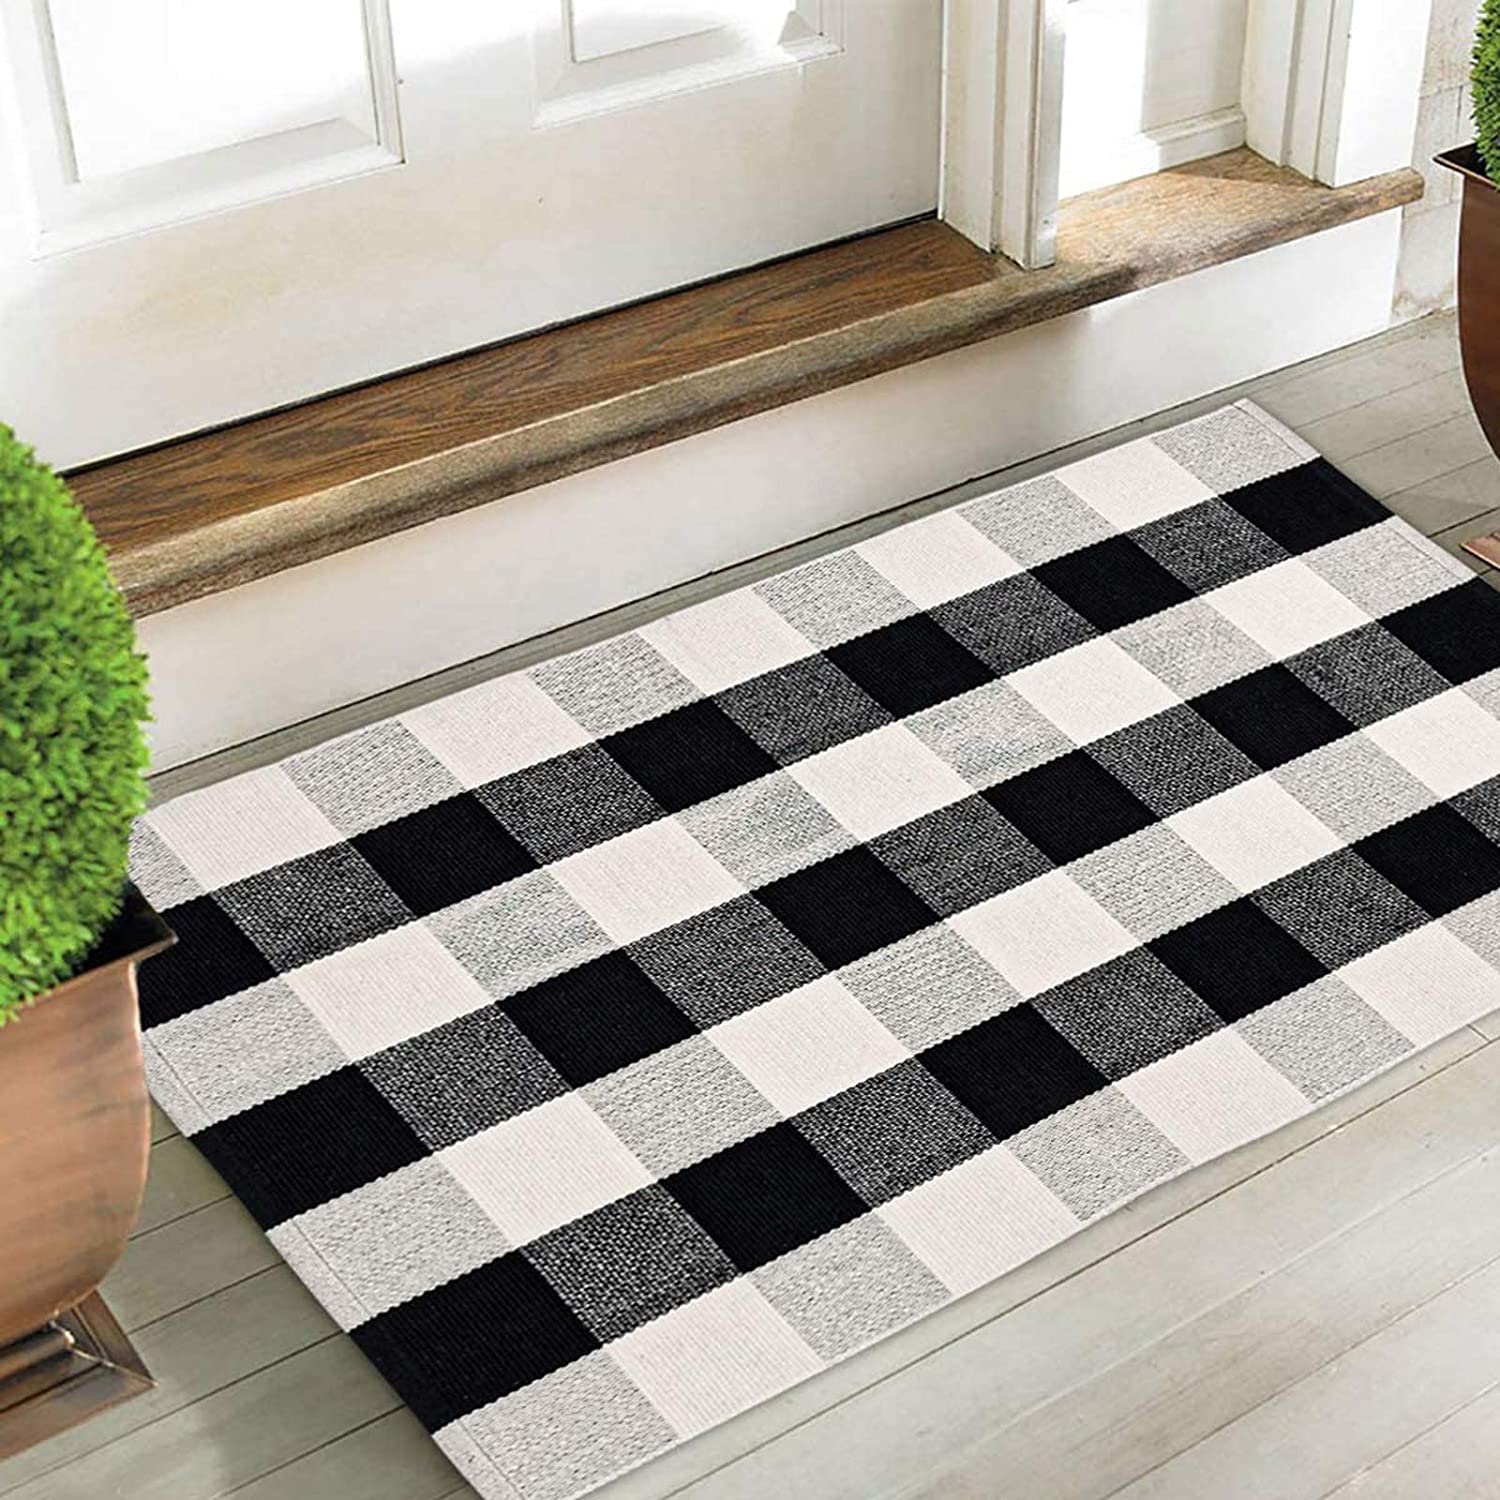 CHICHIC Buffalo Plaid Check Rug Area Rug Fall Decor Doormat Checkered Floor Mat Welcome Layered Mat Indoor for Door Porch Kitchen Farmhouse Entryway Bathroom Carpet Bedroom, Black White, 27.5x43 Inch